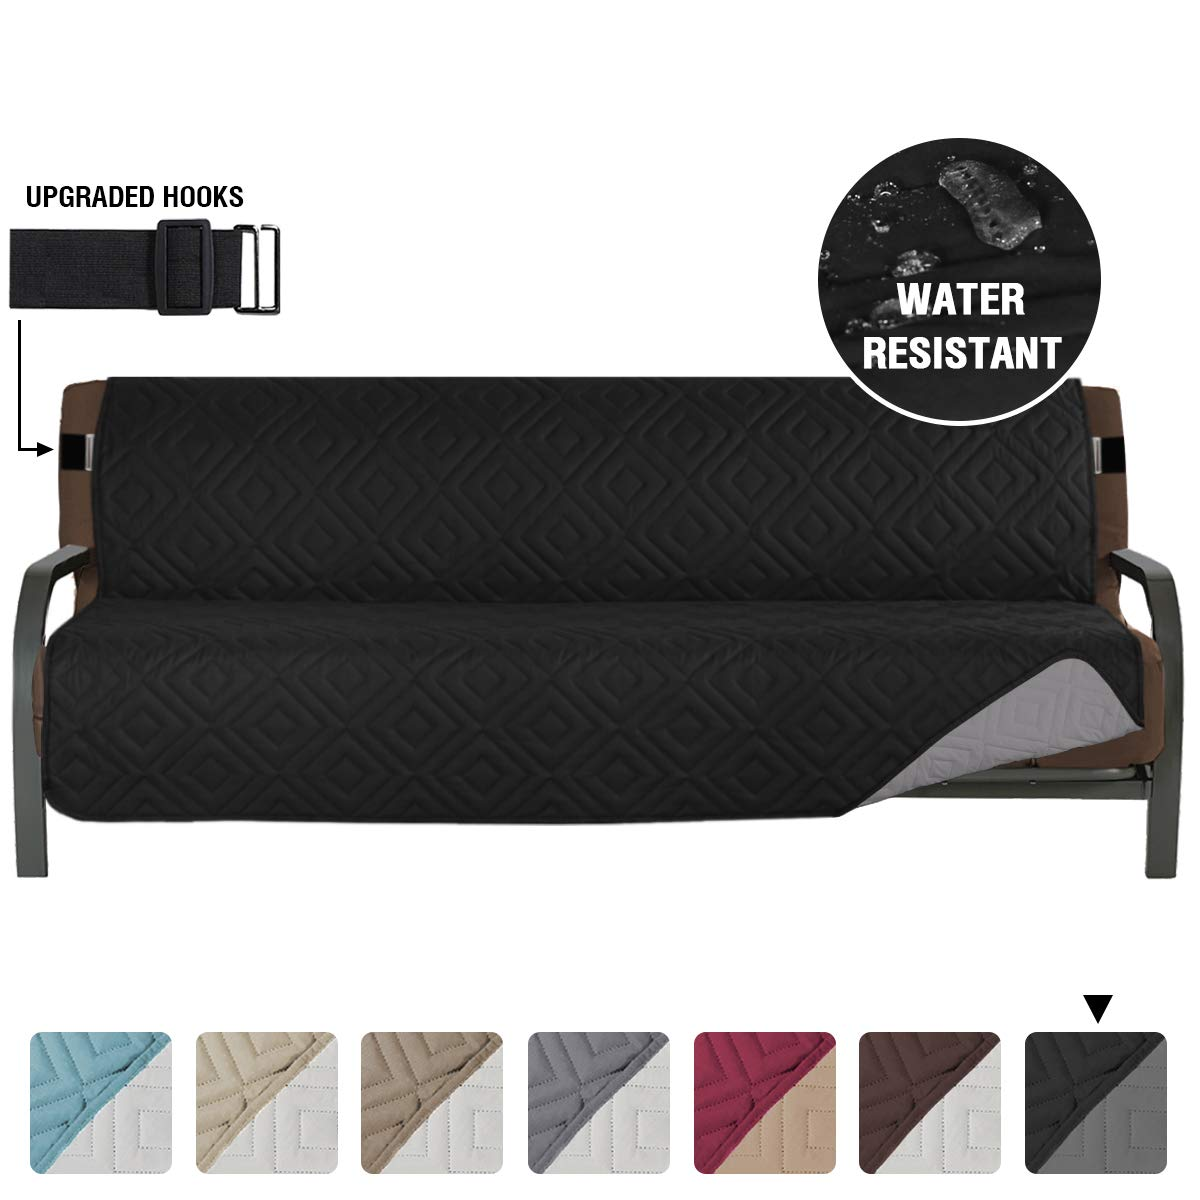 Picture of: Armless Futon Cover Futon Slipcover Full Queen Size Futon Couch Cover Futon Sofa Cover Futon Bed Cover Furniture Protector Water Repellent Soft Thick Quilted Reversible Seat Width 70 Black Grey